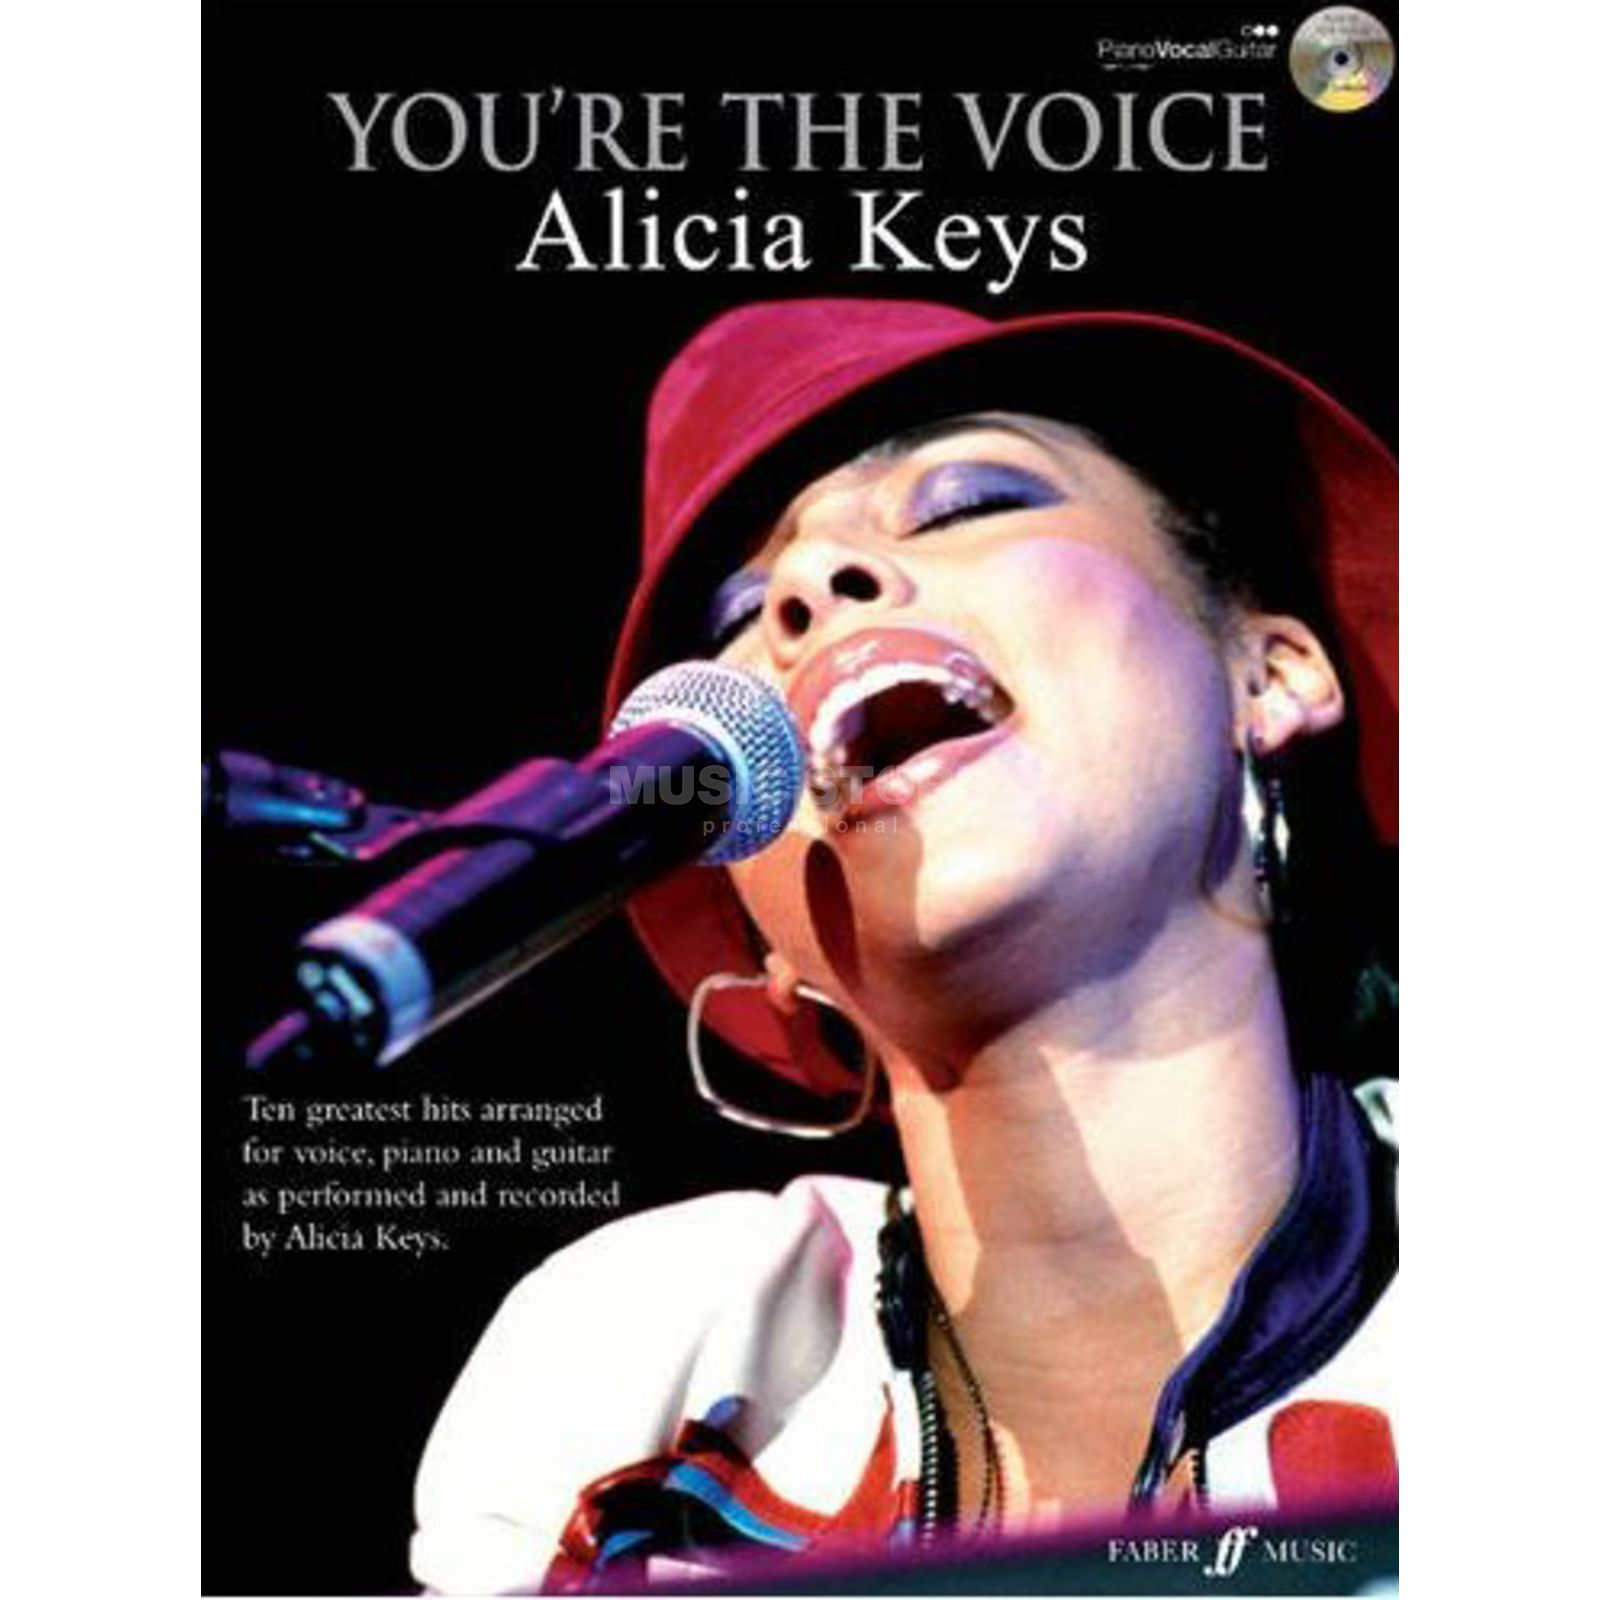 Faber Music You're the voice - Alicia Keys mit Playback CD, PVG Produktbild